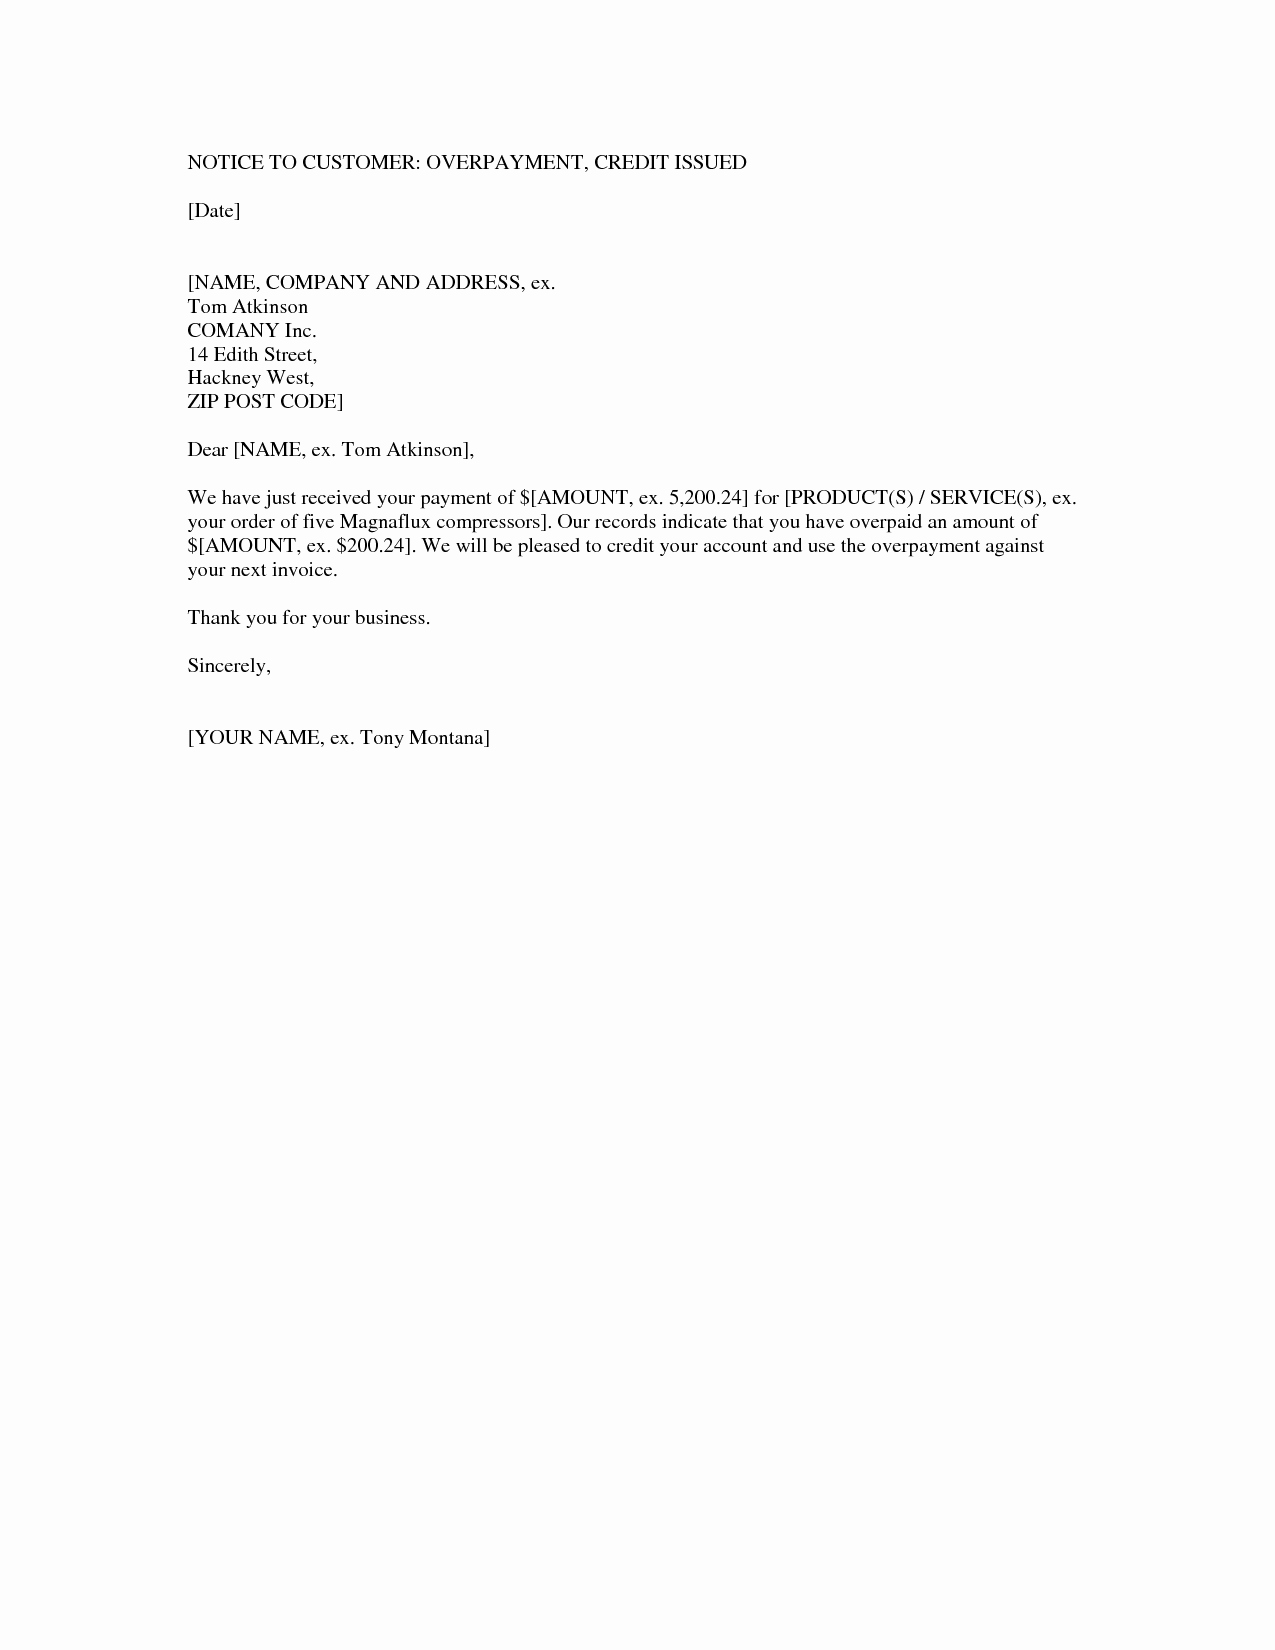 Sample Refund Letter to Customer Lovely Best S Of Overpayment Notification Letter Sample